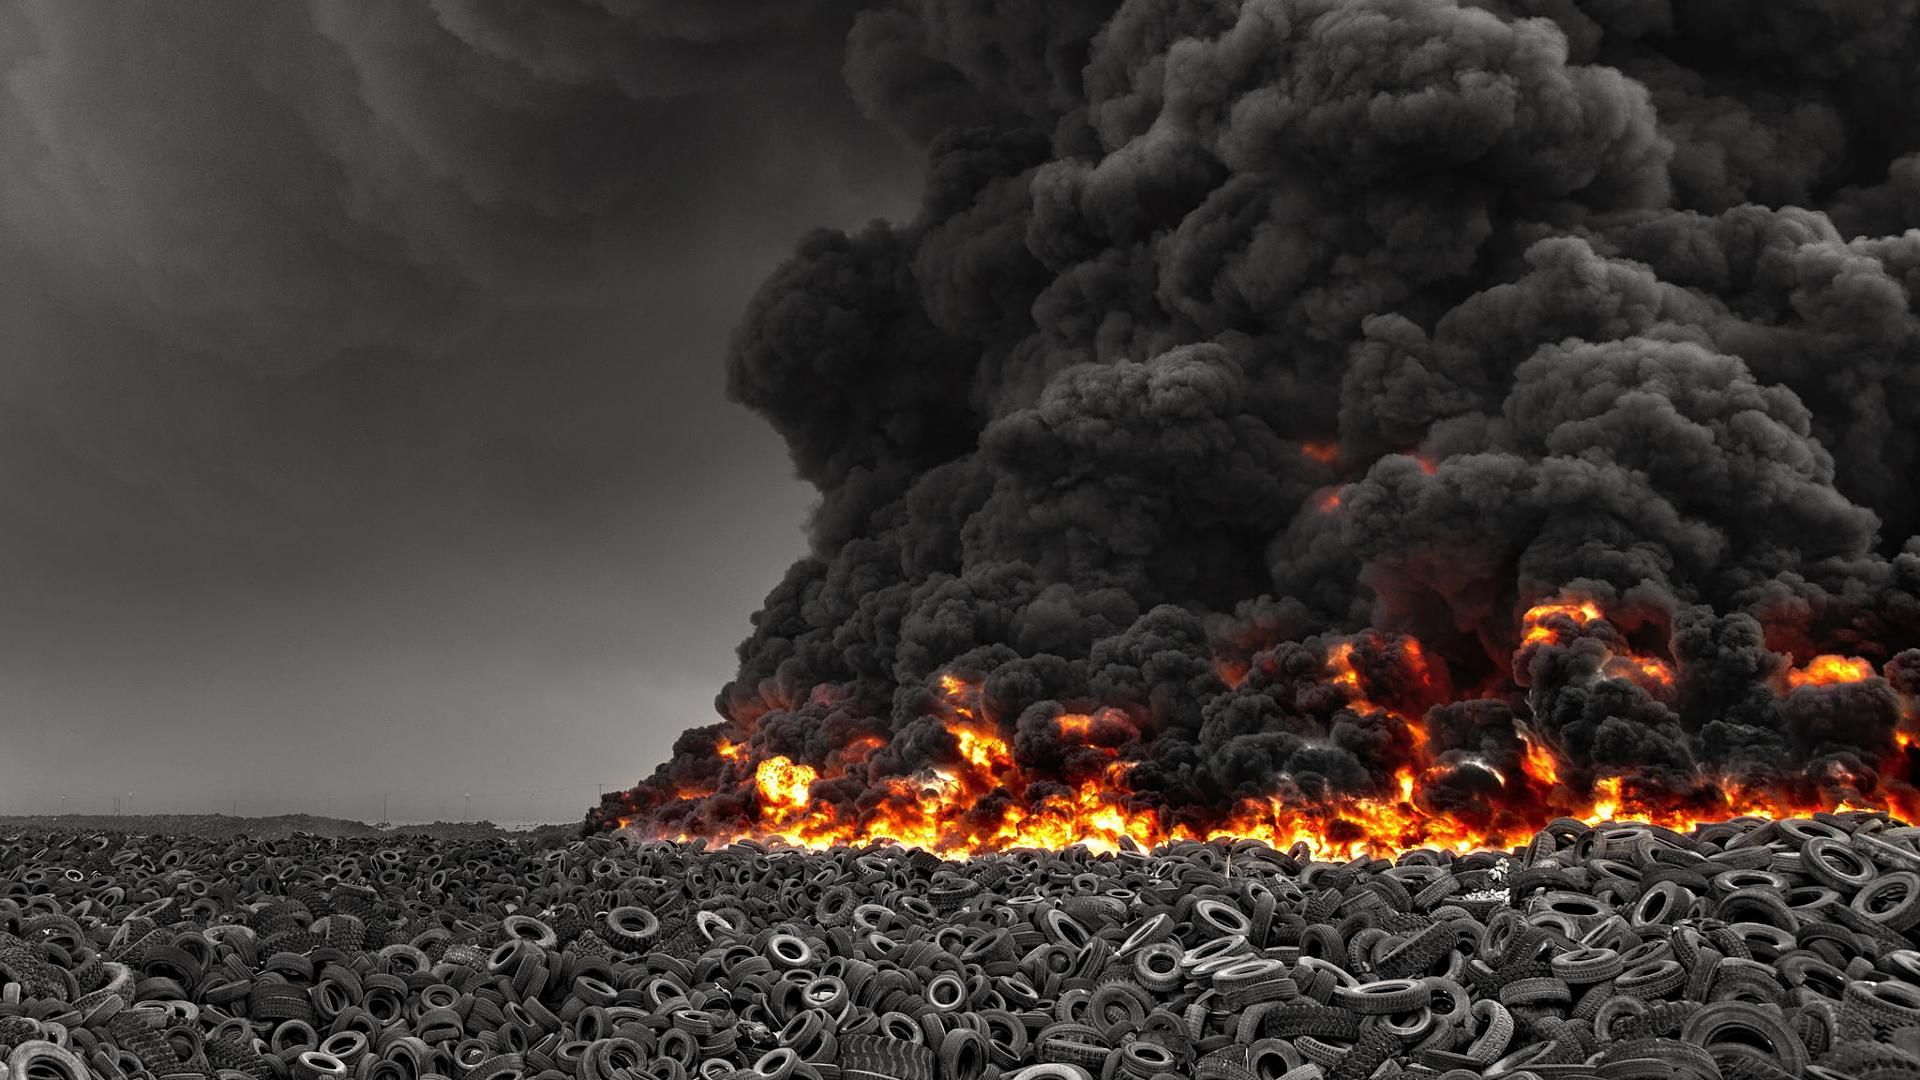 Giant fire at world's largest tire field. (xpost /r/pics